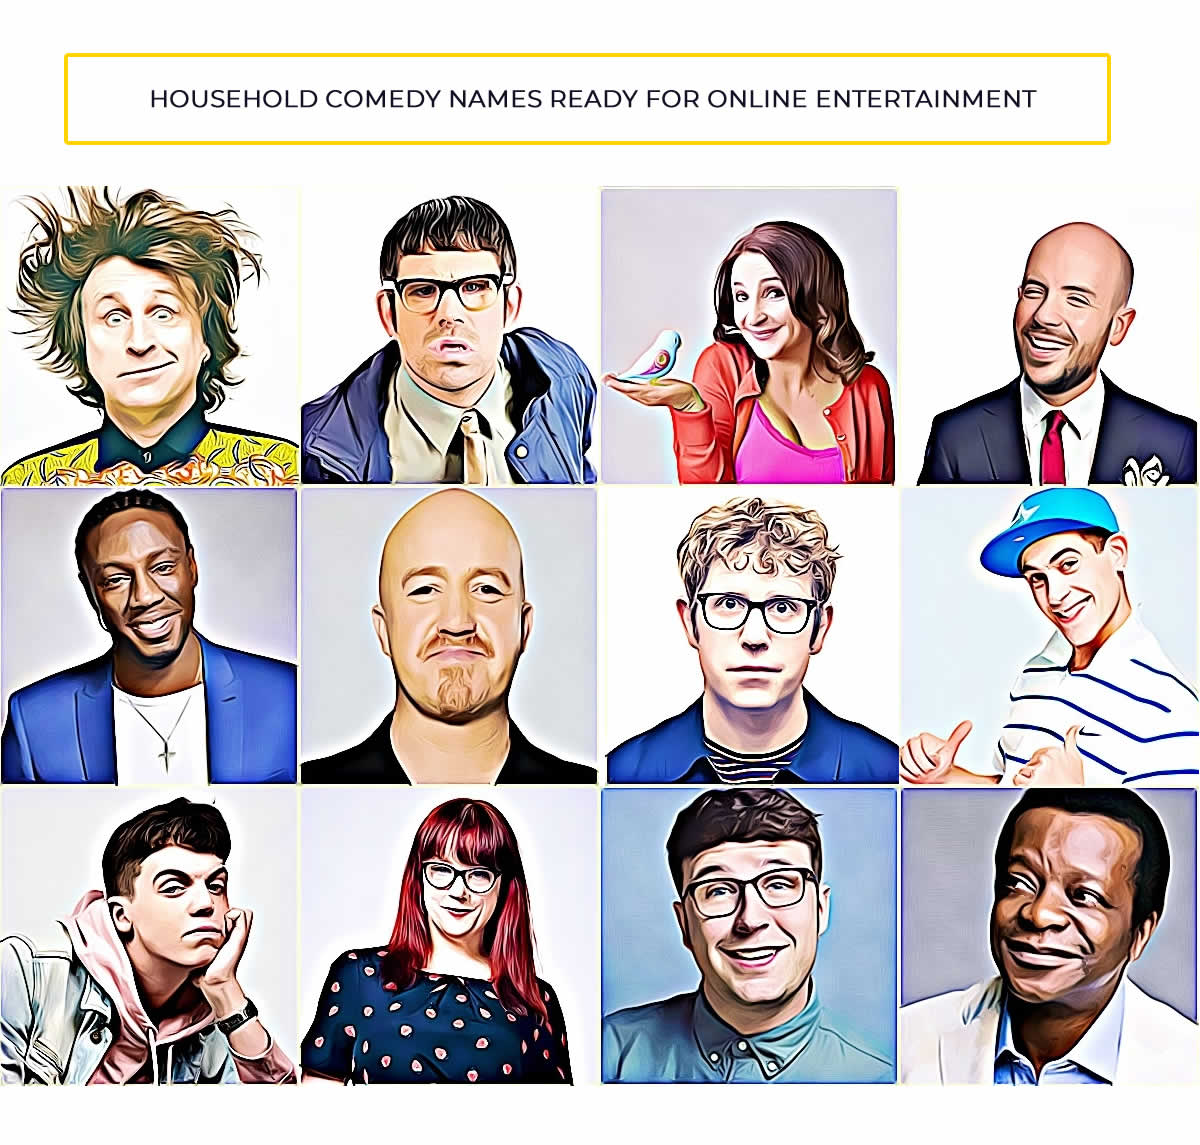 Live Streaming Comedy - Hire Zoom Comedians Bespoke Comedy Entertainment